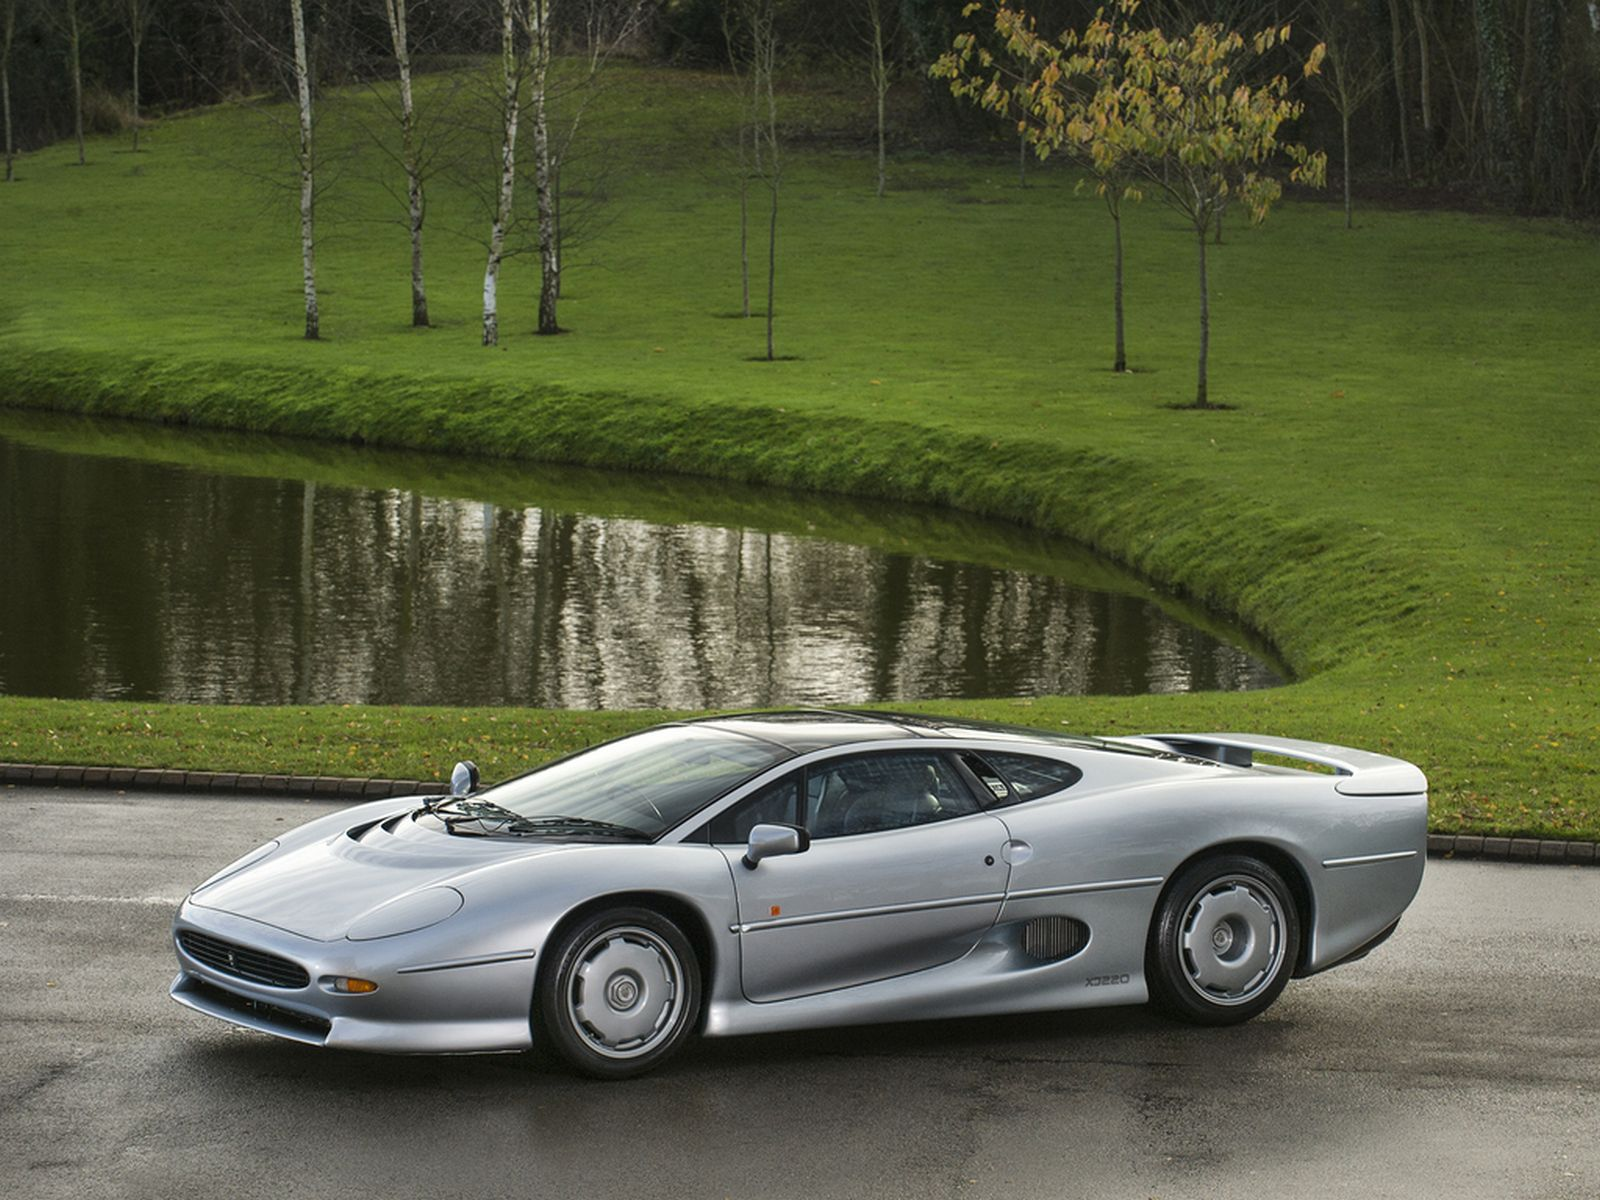 stunning silver jaguar xj220 available for purchase in the uk carscoops. Black Bedroom Furniture Sets. Home Design Ideas